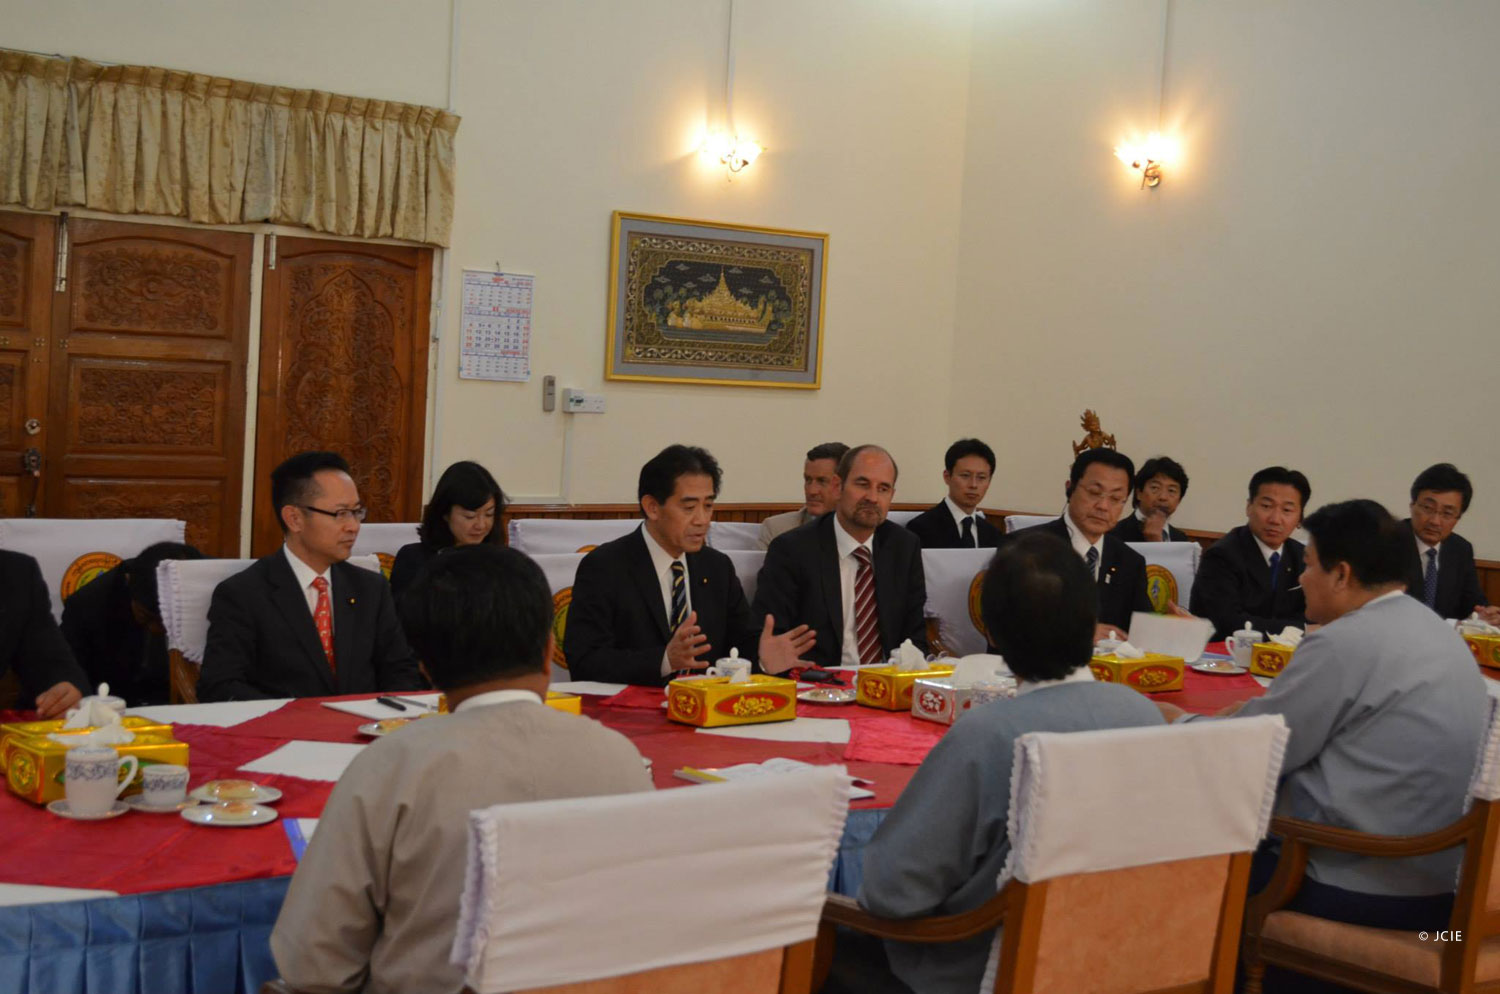 FGFJ Diet Task Force members meet with the health minister of Myanmar